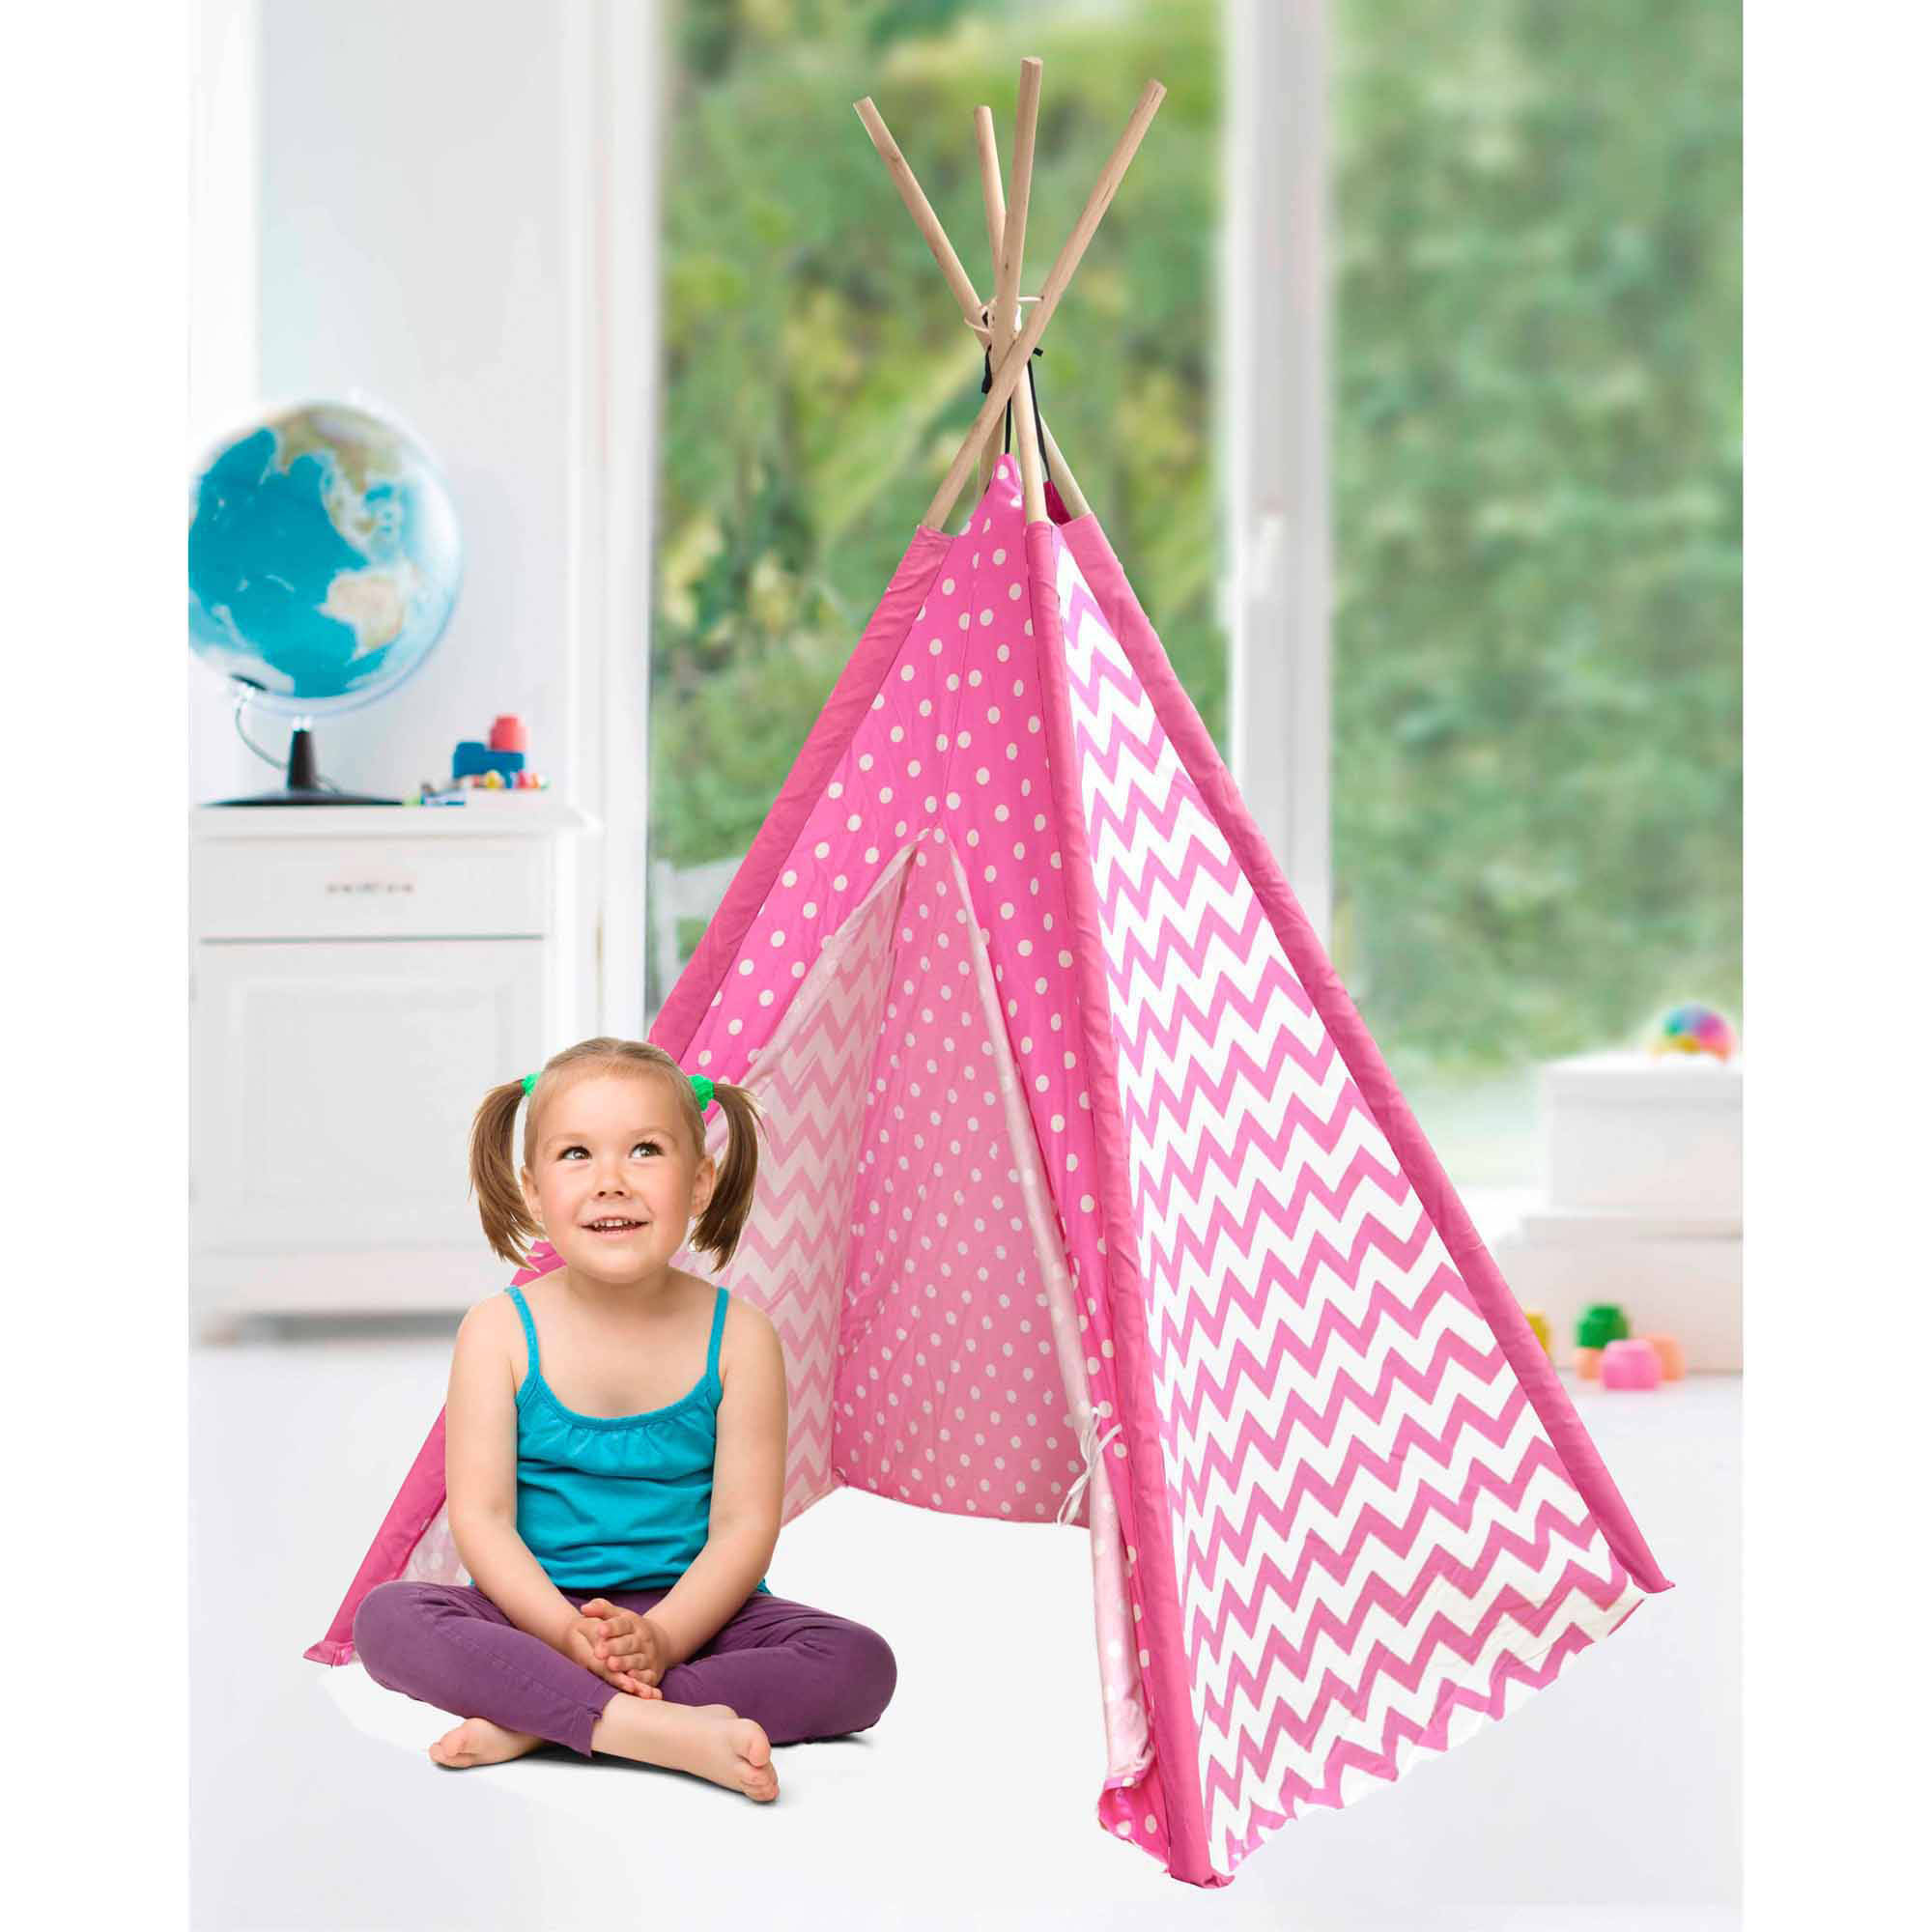 American Kids Awesome Tee-Pee Tent, Pink Chevron Dot by Idea Nuova